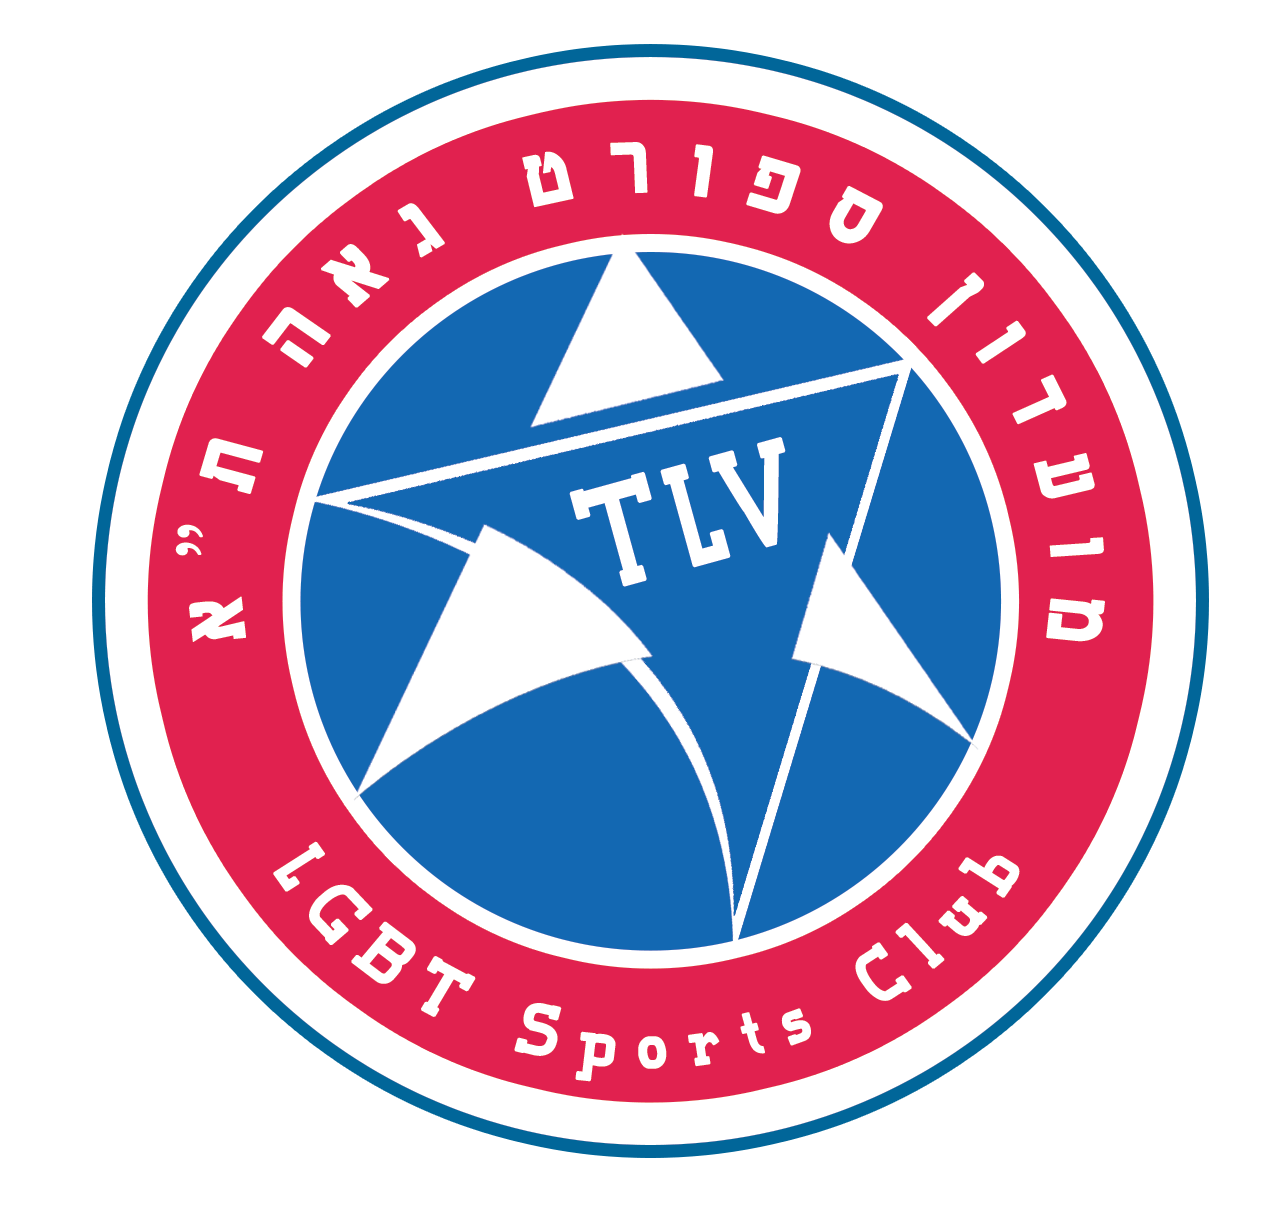 https://i2.wp.com/ngba.org/wp-content/uploads/2018/07/LOGO_-lgbt-sport-club-tlv.png?fit=1280%2C1216&ssl=1